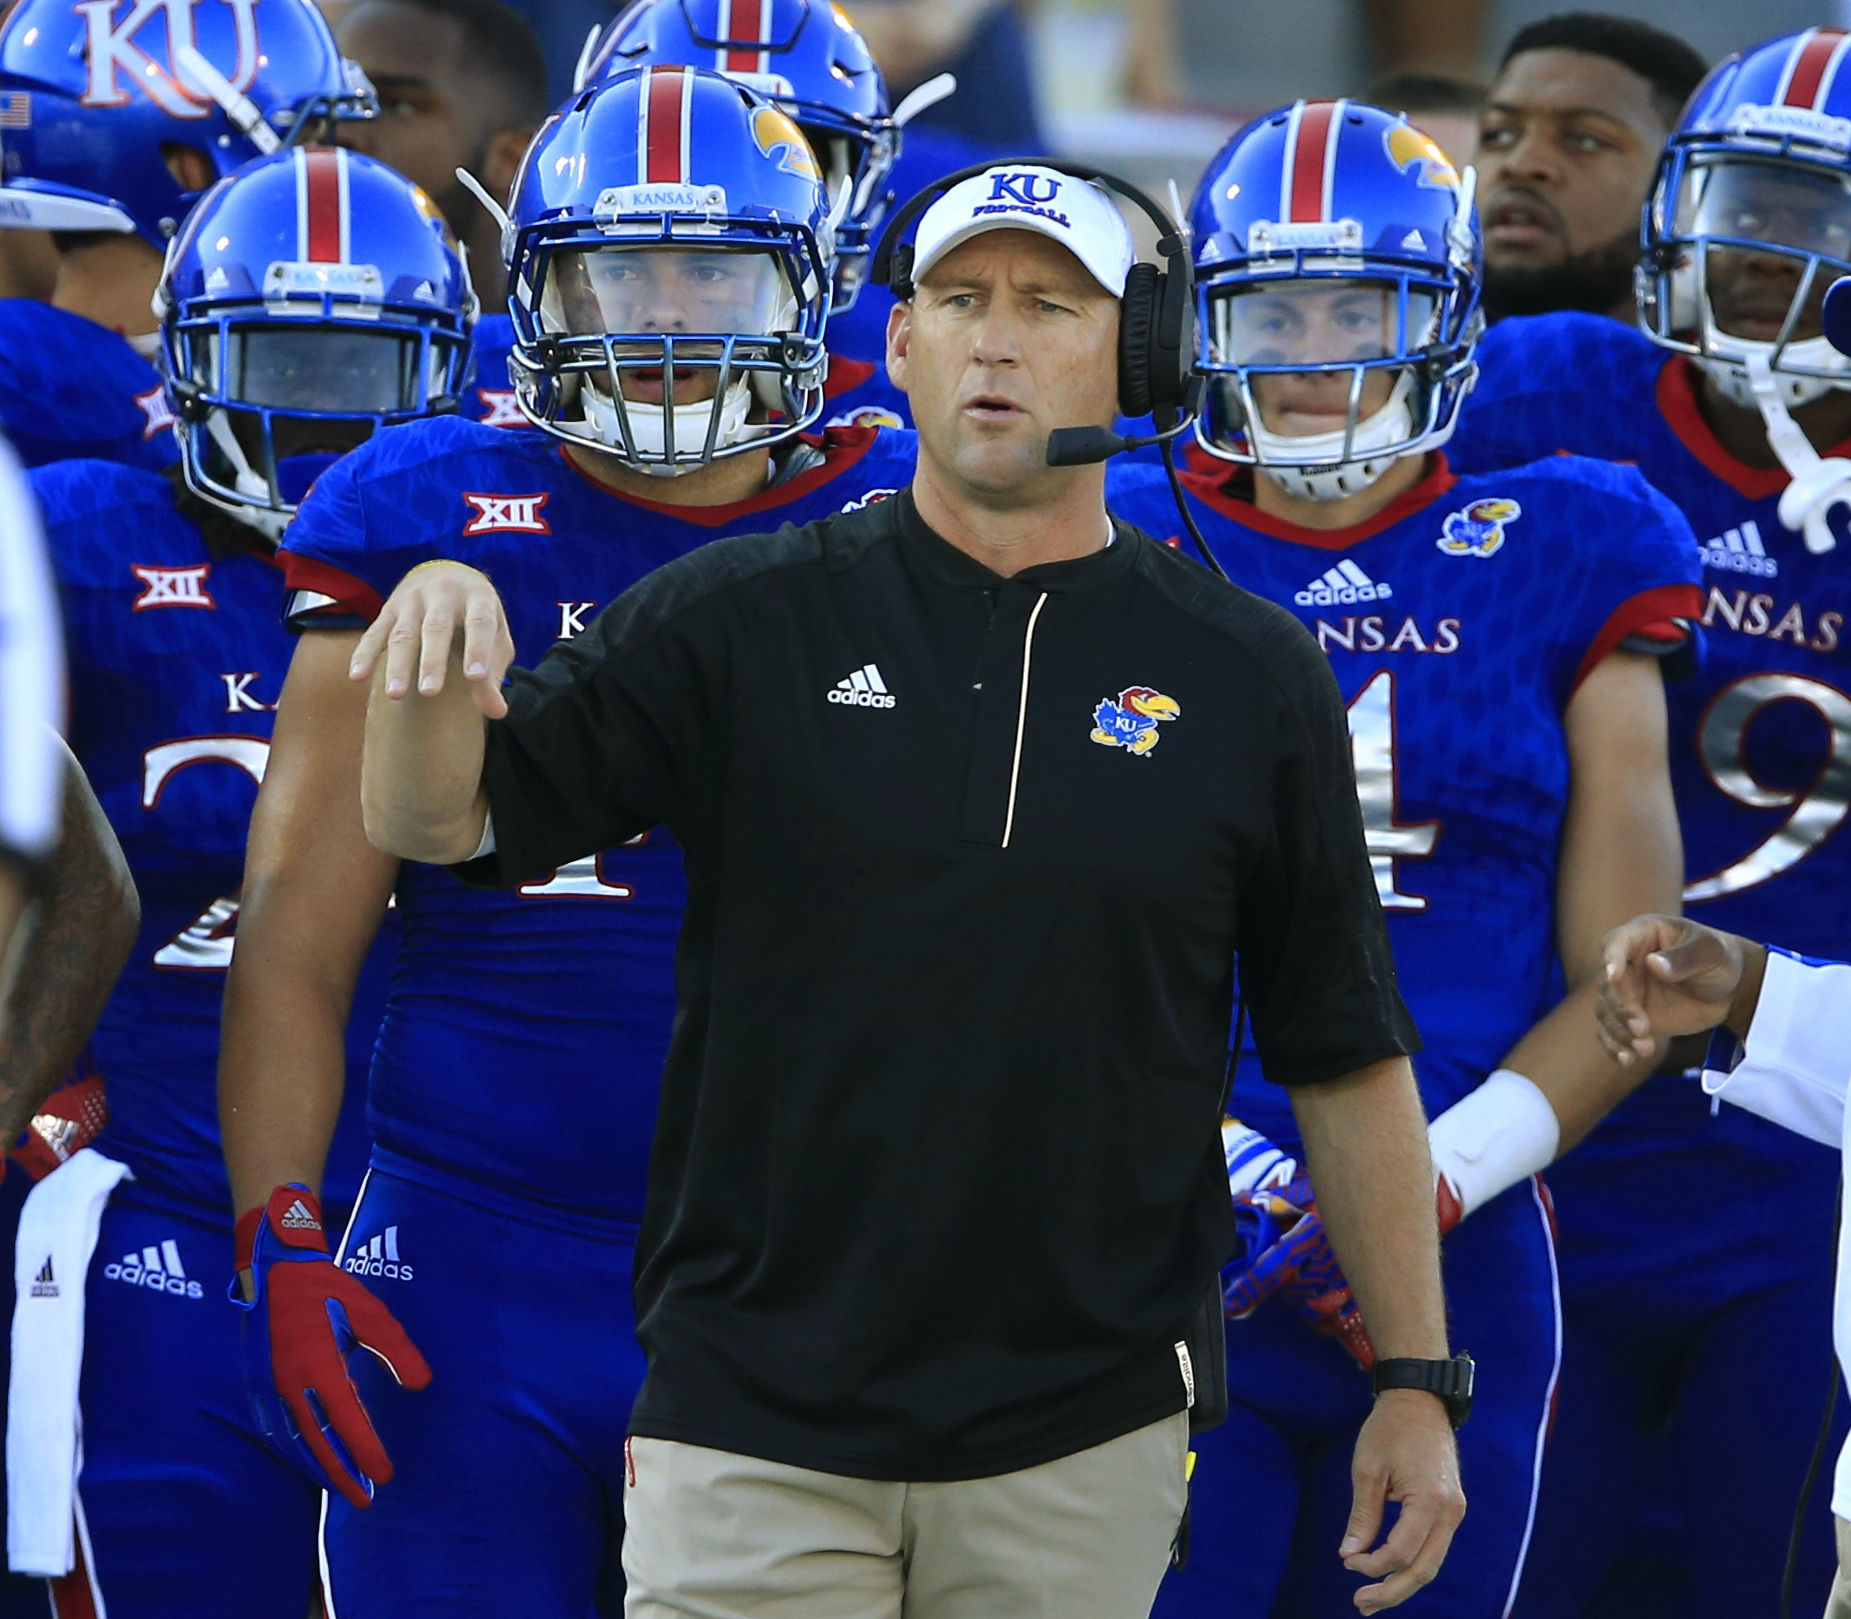 Kansas head coach David Beaty directs his team during the first half of an NCAA college football game against Rhode Island in Lawrence, Kan., Saturday, Sept. 3, 2016. (AP Photo/Orlin Wagner)